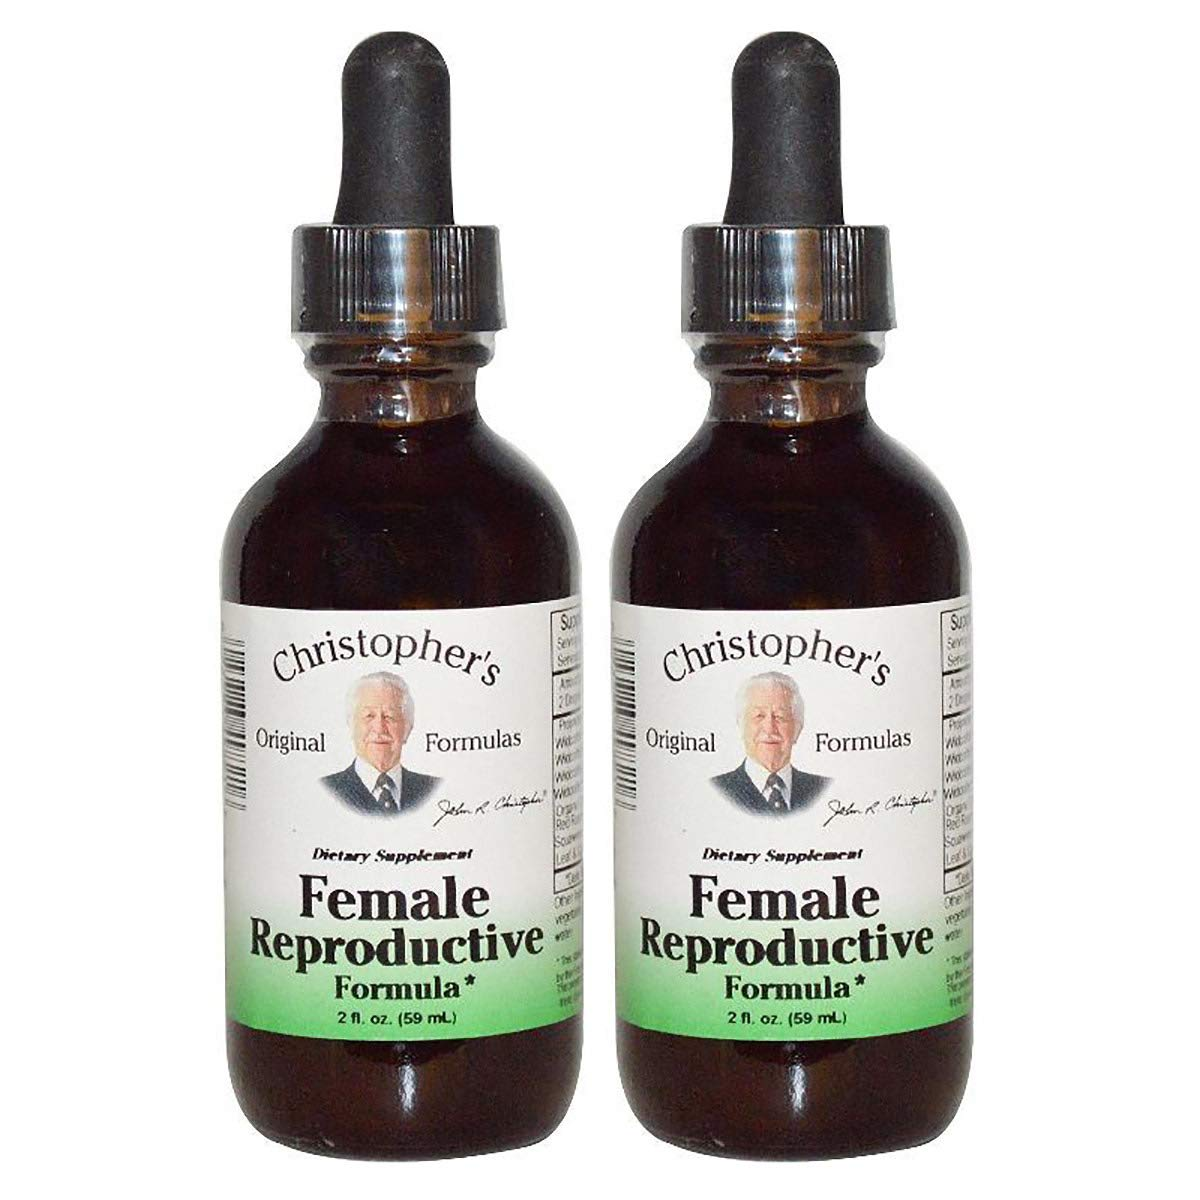 Christopher's Original Formulas Female Reproductive Extract 2 fl. oz. 2 Pack